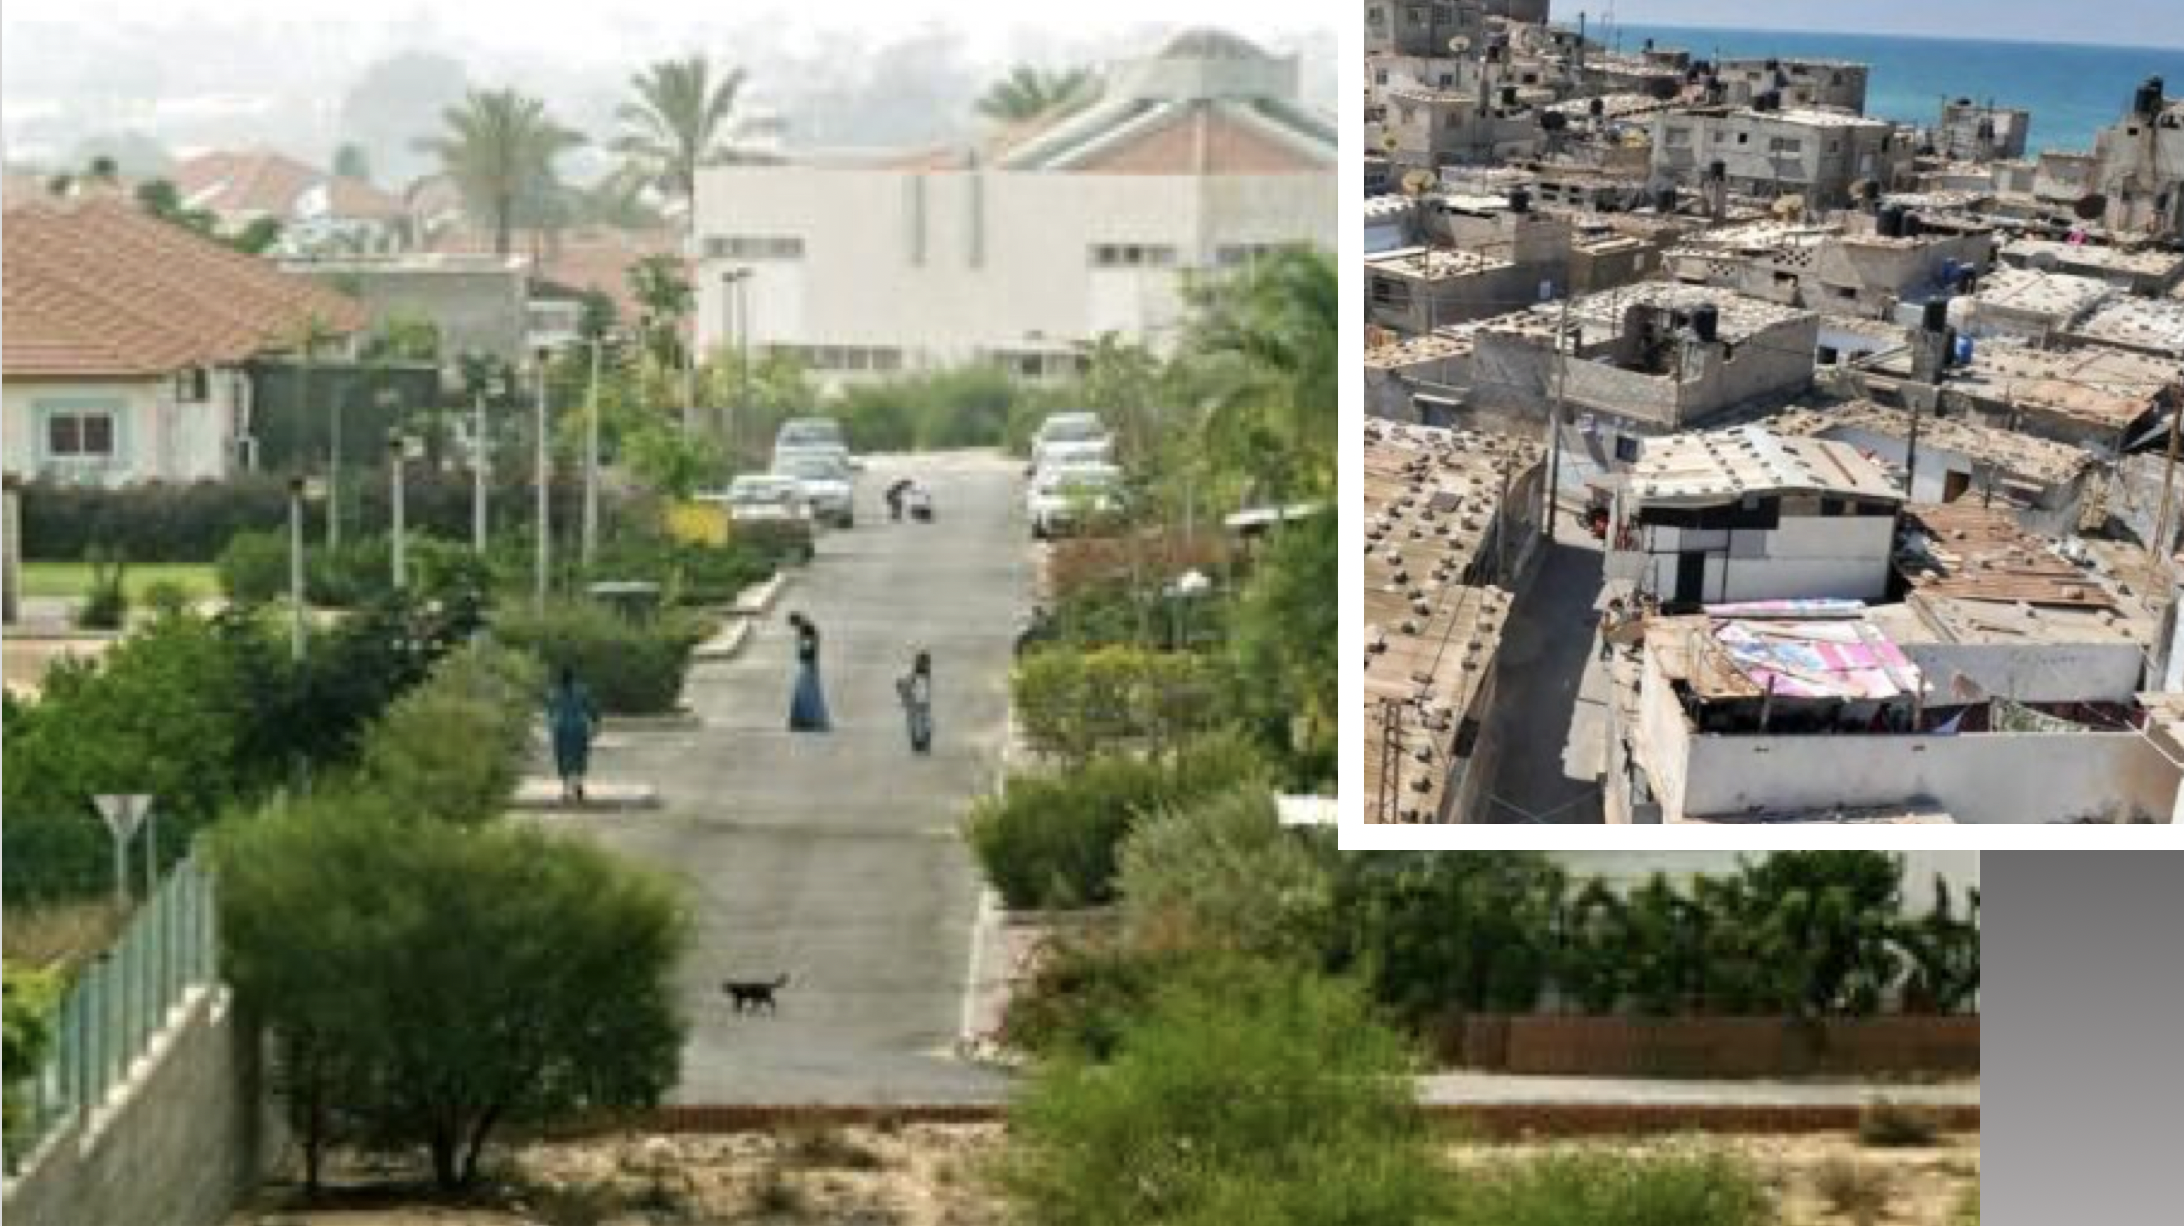 Photo of a Jewish-only settlement in Gaza. Inset is a photo of Palestinian Gaza, crowded and dry.